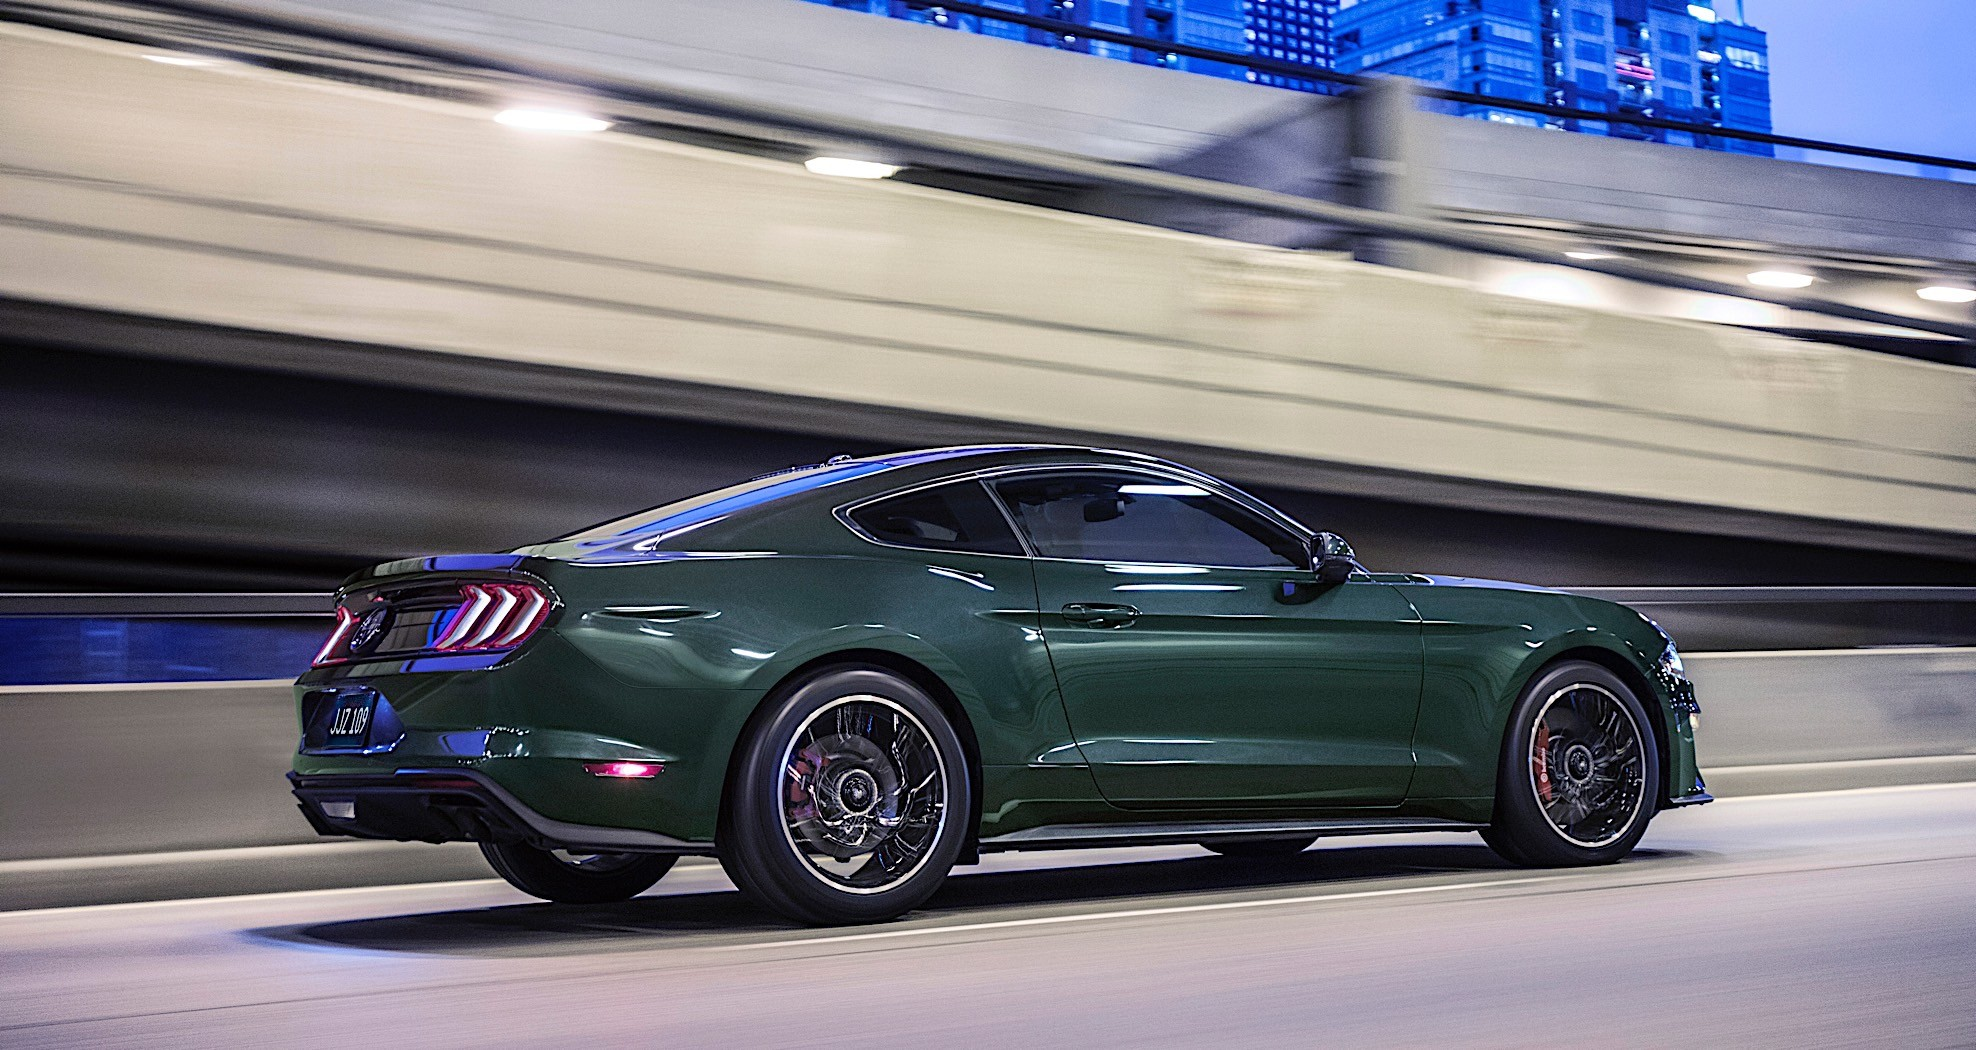 Ford Mustang Bullitt Now Delivers 480 HP, Available for Order in the U.S. - autoevolution